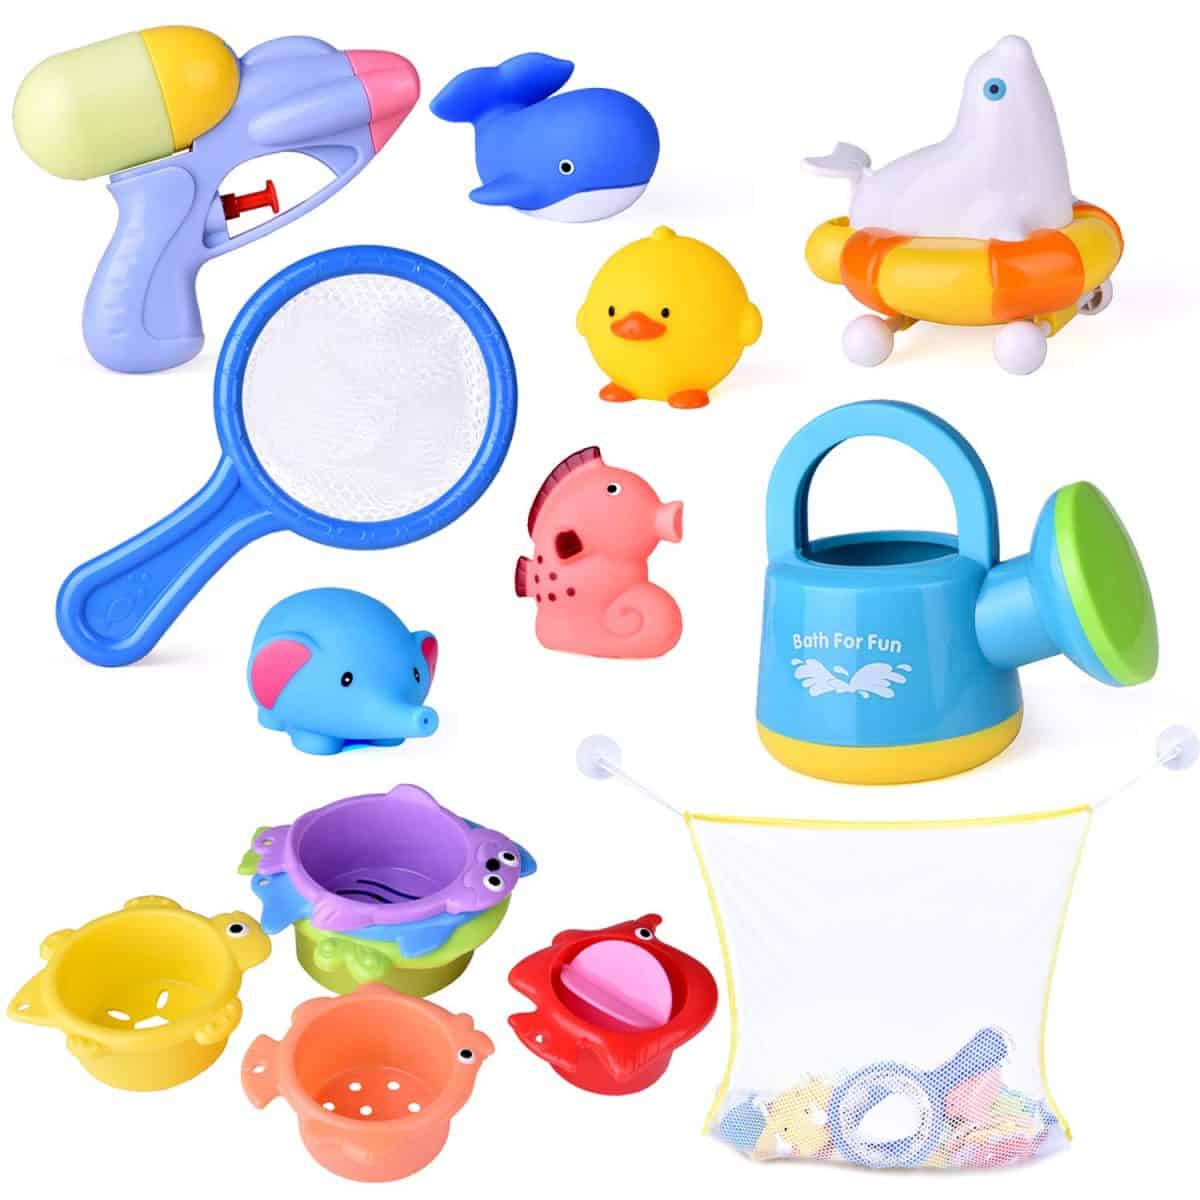 bath toys gift ideas for Christmas for 6 - 12 month olds